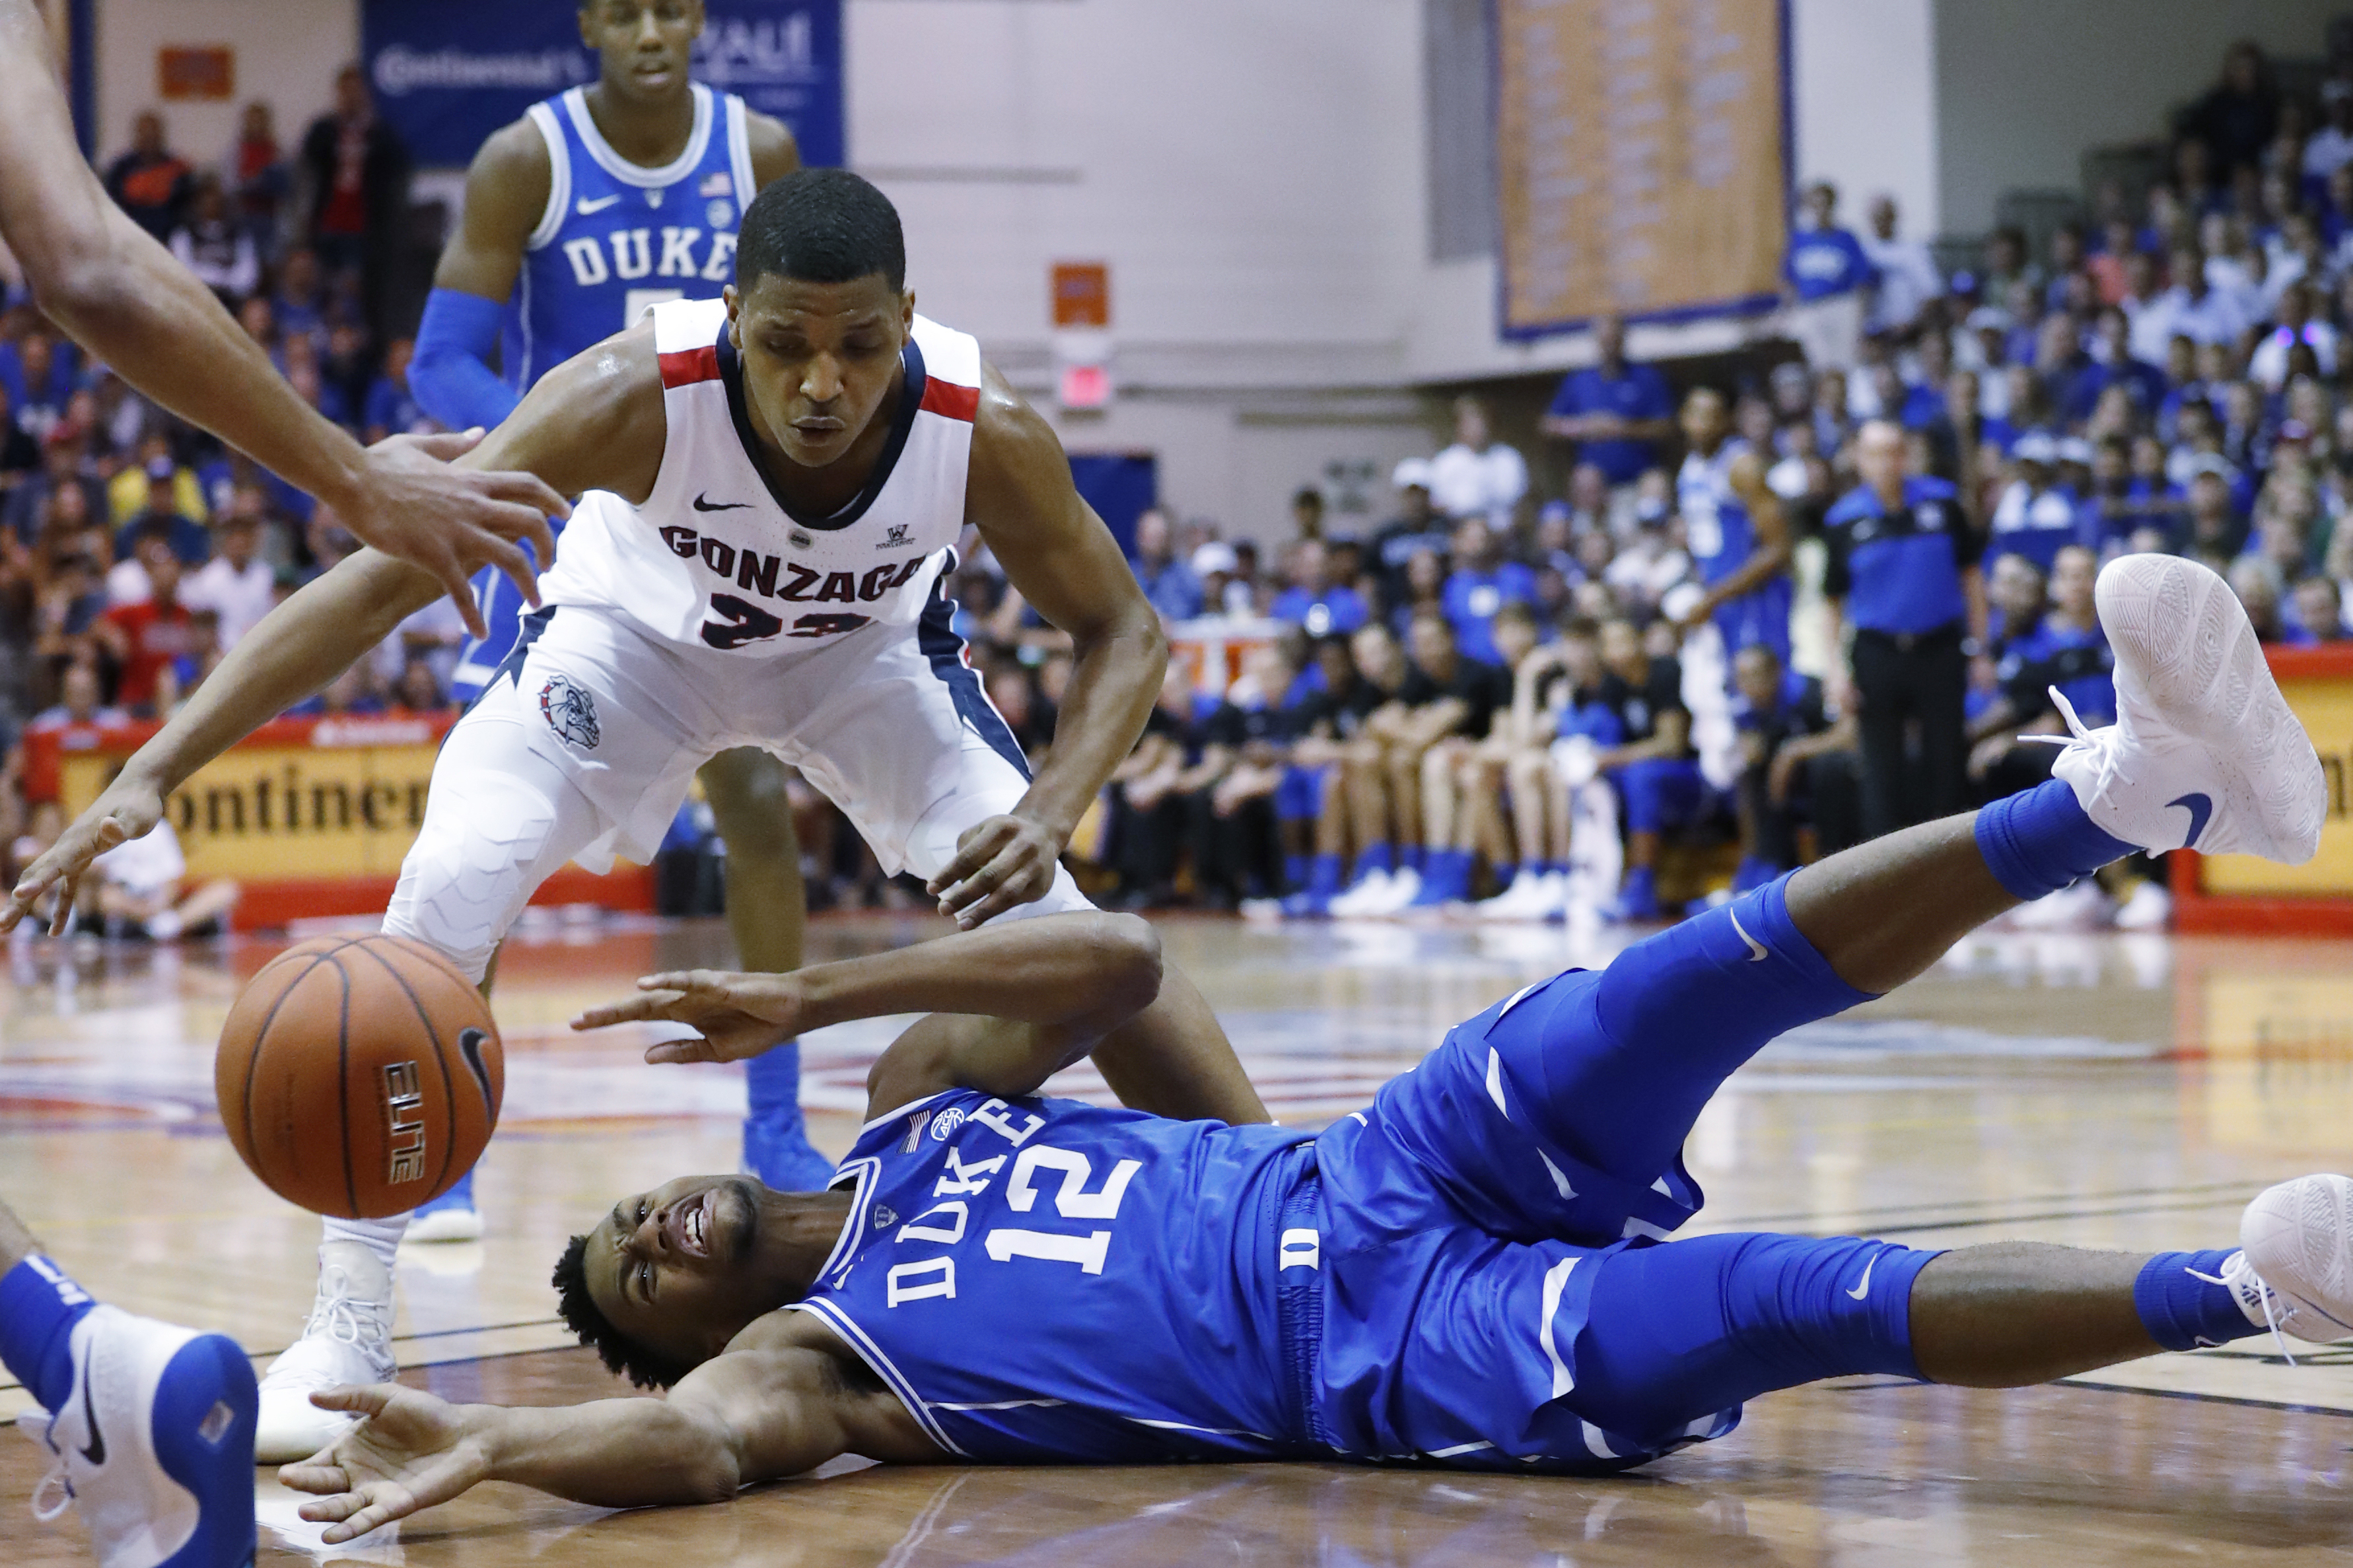 Duke forward Javin DeLaurier (12) loses the ball while being guarded by Gonzaga guard Zach Norvell Jr. on Wednesday in Lahaina, Hawaii.